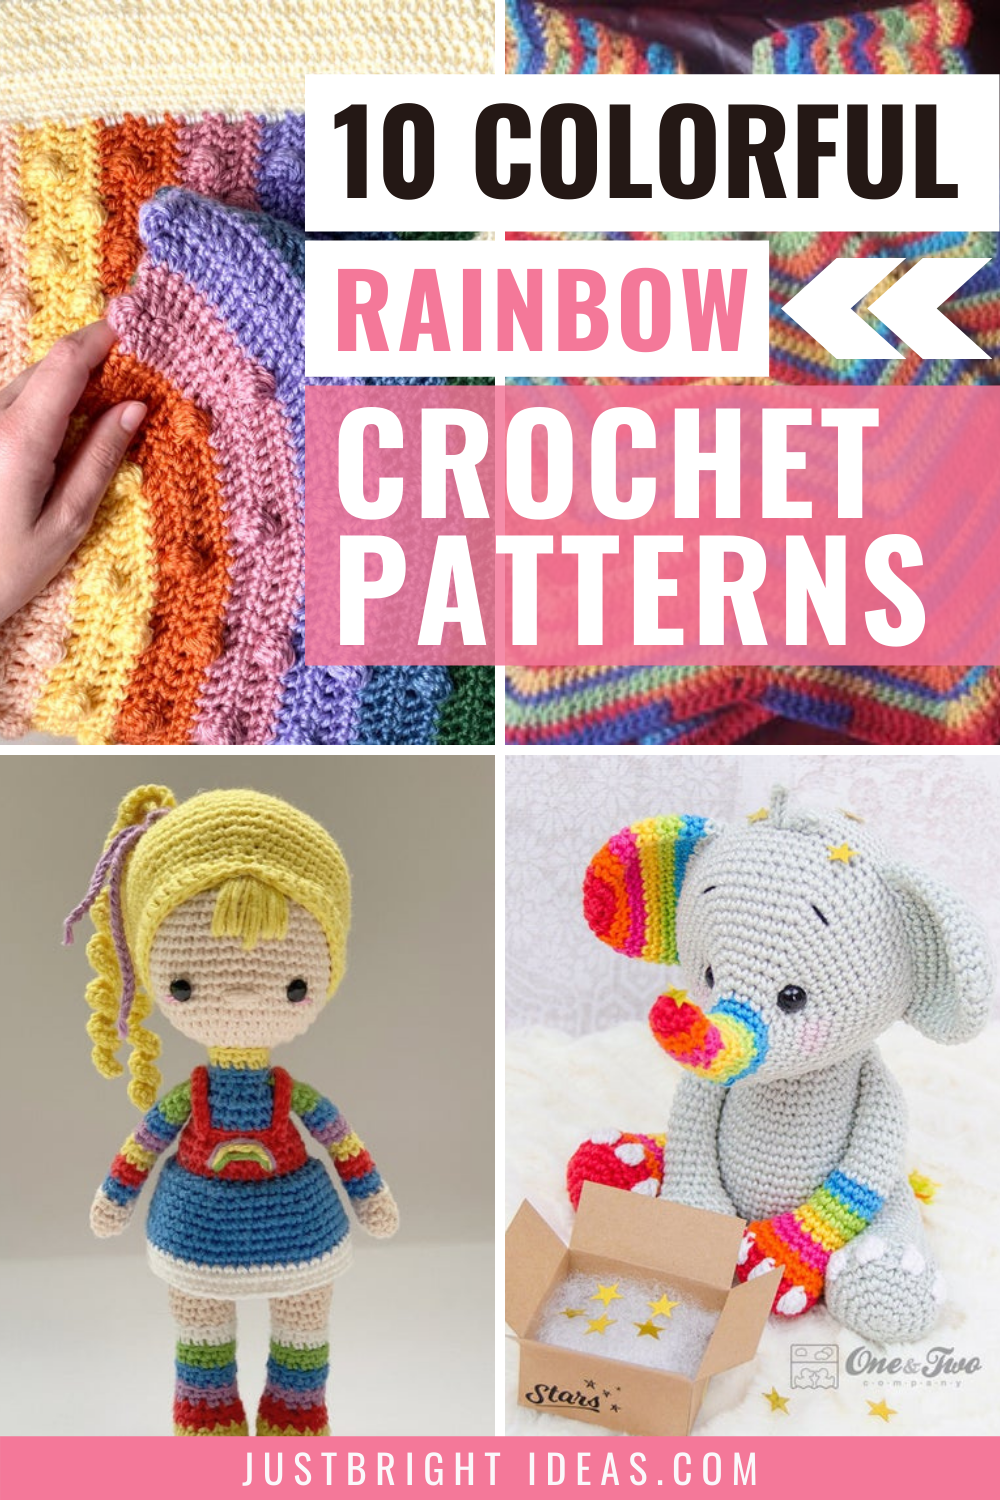 Rainbow Crochet patterns